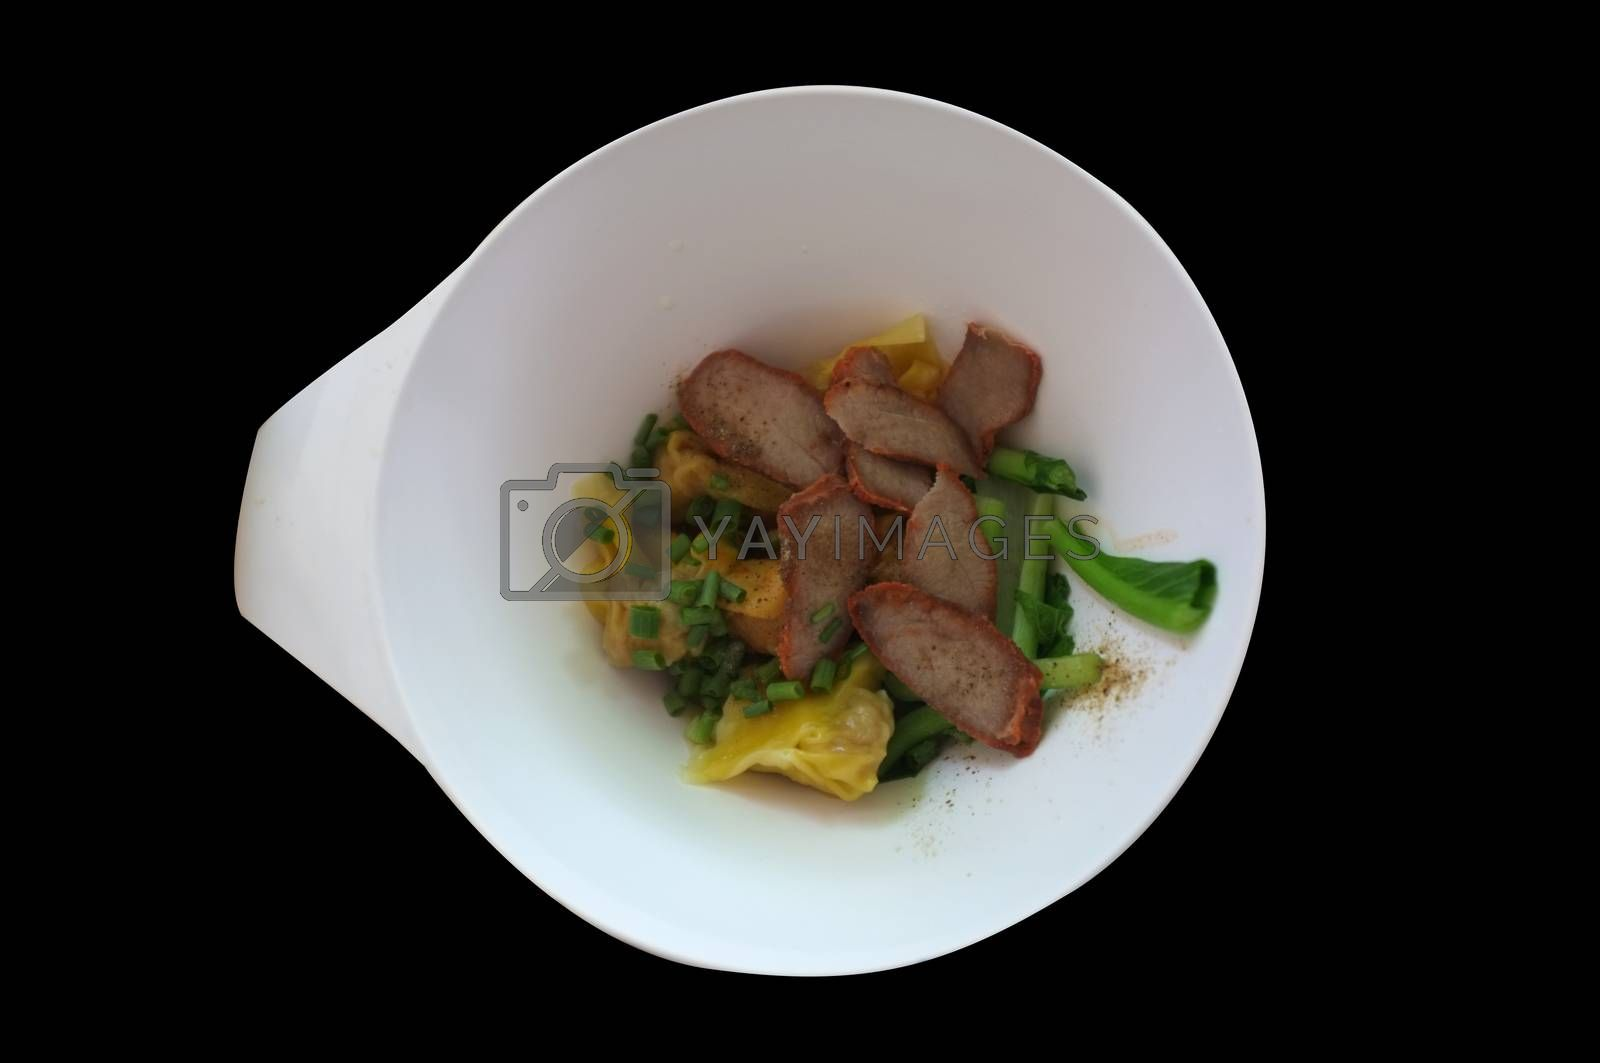 Wantan egg with pork and sliced roasted red pork . Asian street food